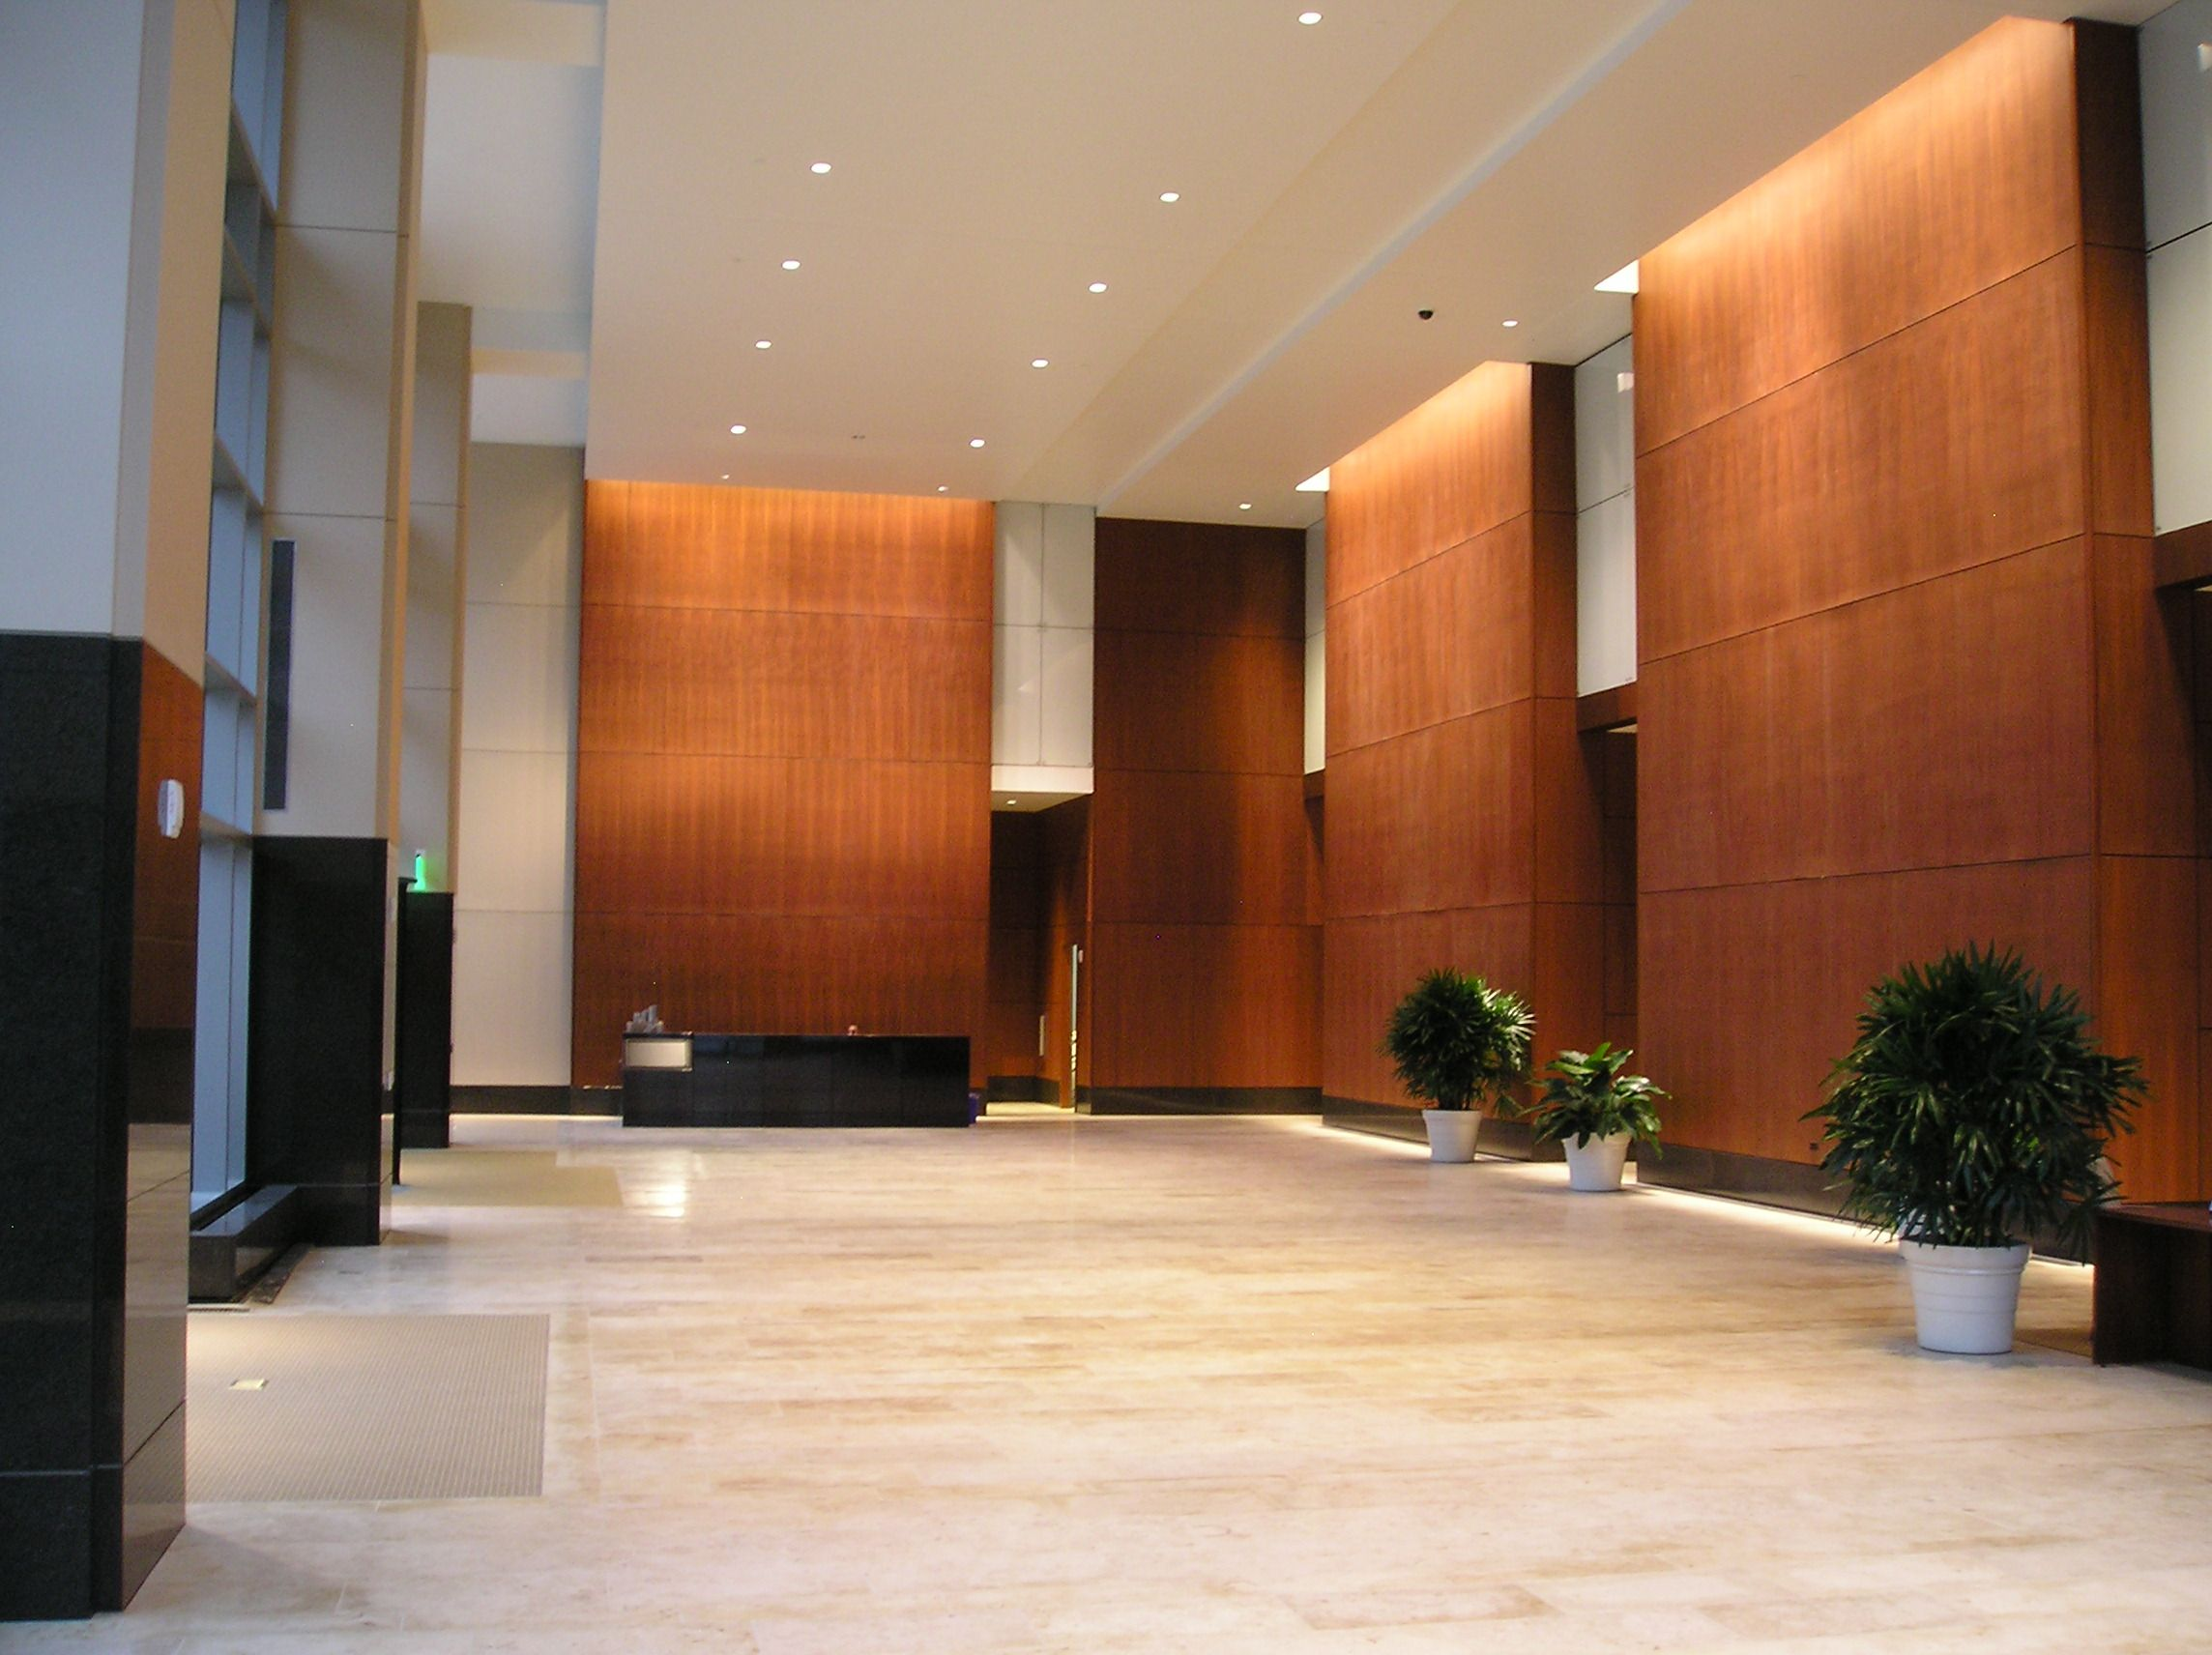 office lobby designs. hospital main entrance lobby office interior design room meeting designs o